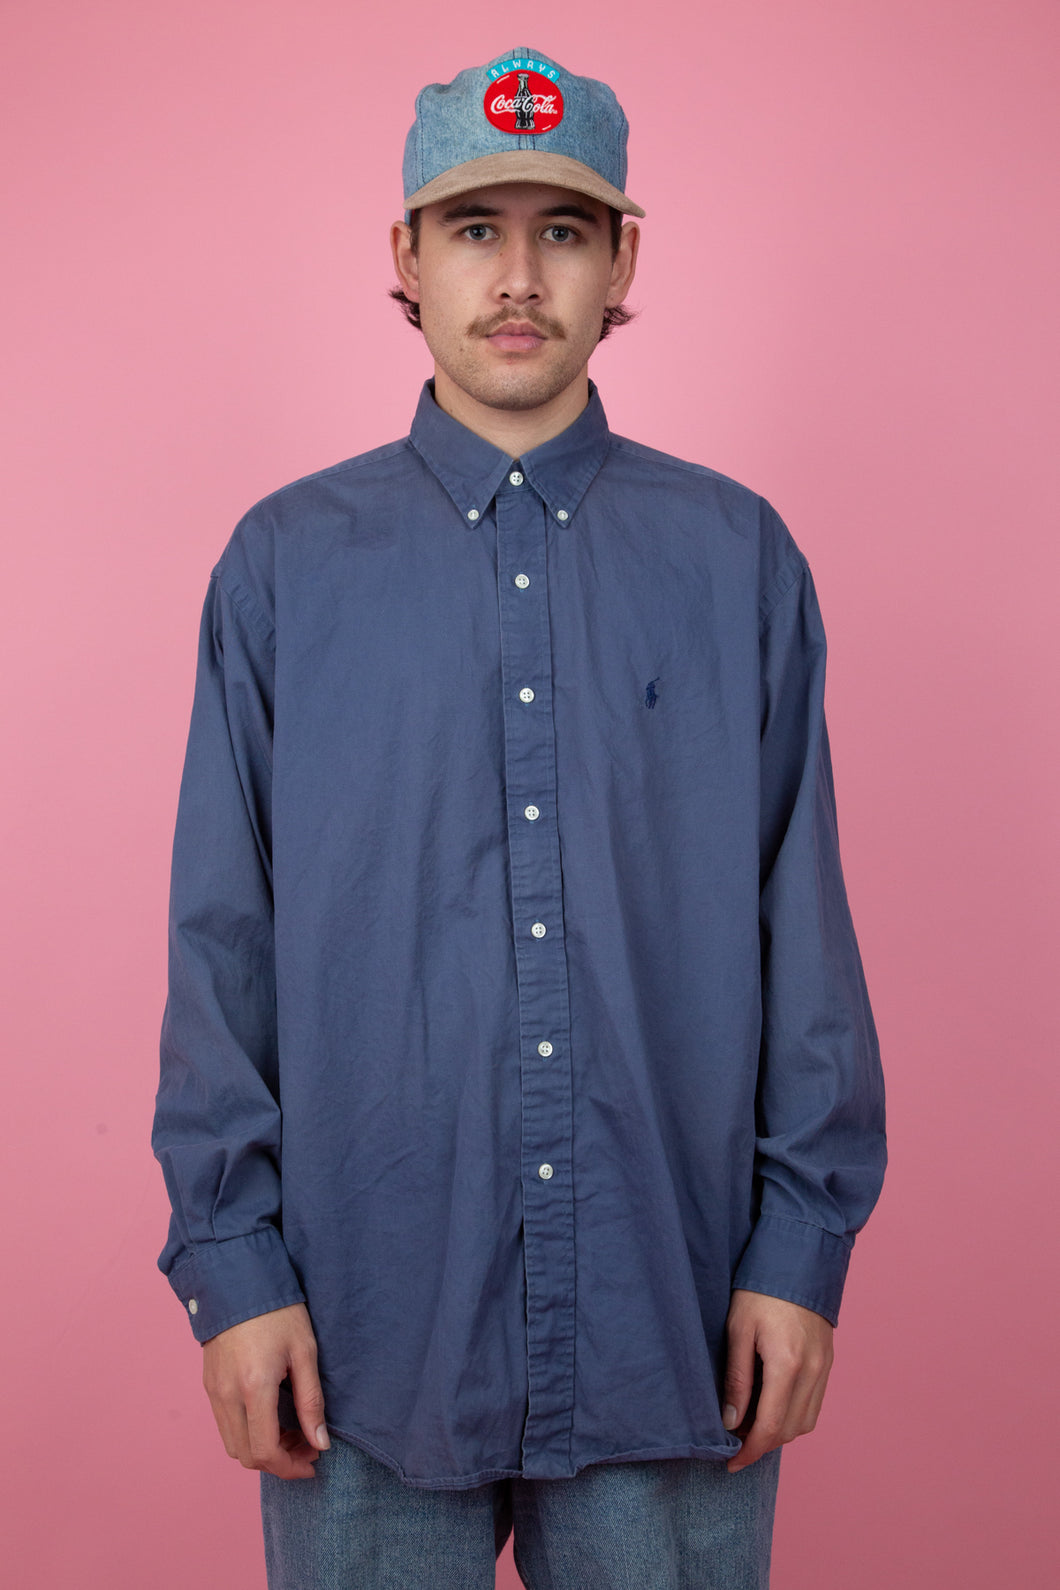 oversize navy button up with embroidered ralph lauren emblem